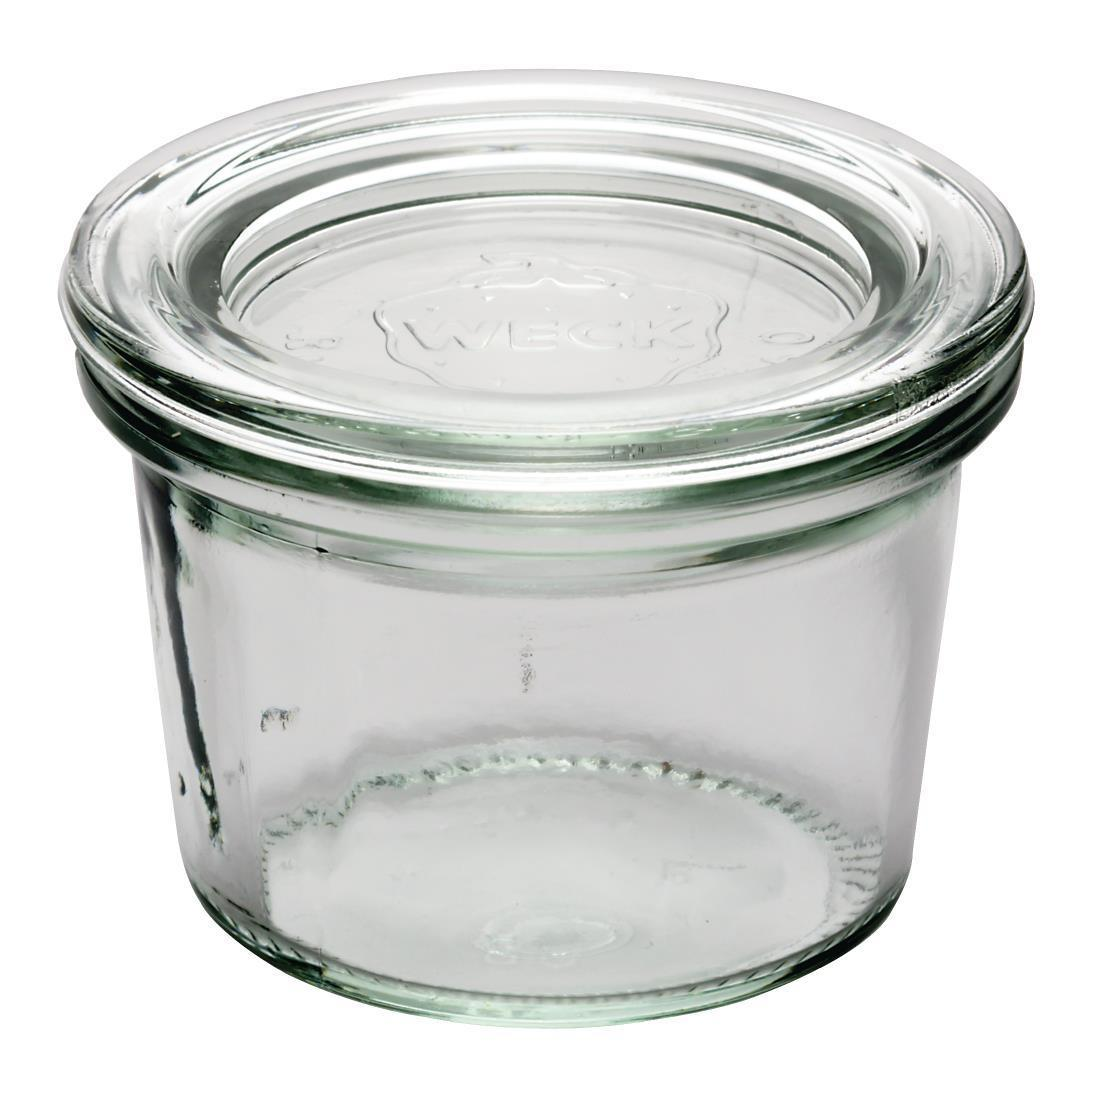 APS 80ml Weck Jar (Pack of 12) - Case 12 - GH386